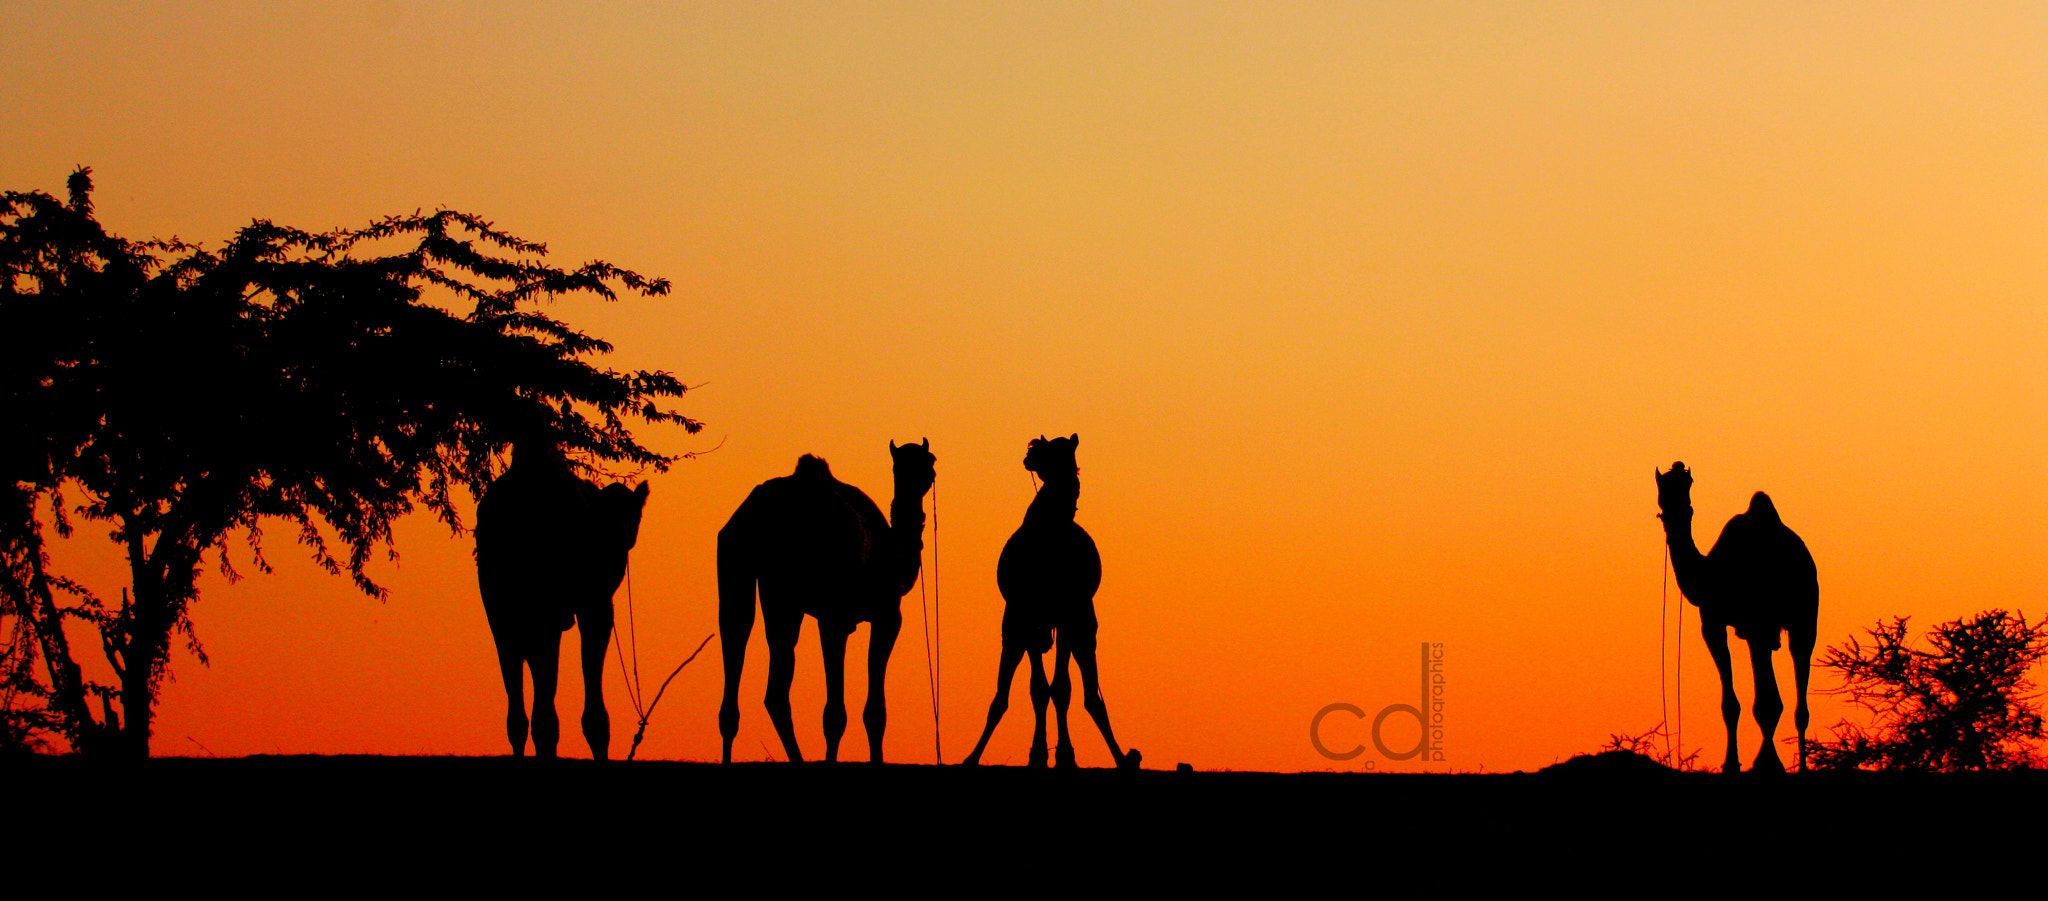 Photograph Desert Silhouette by Arpit Modi on 500px